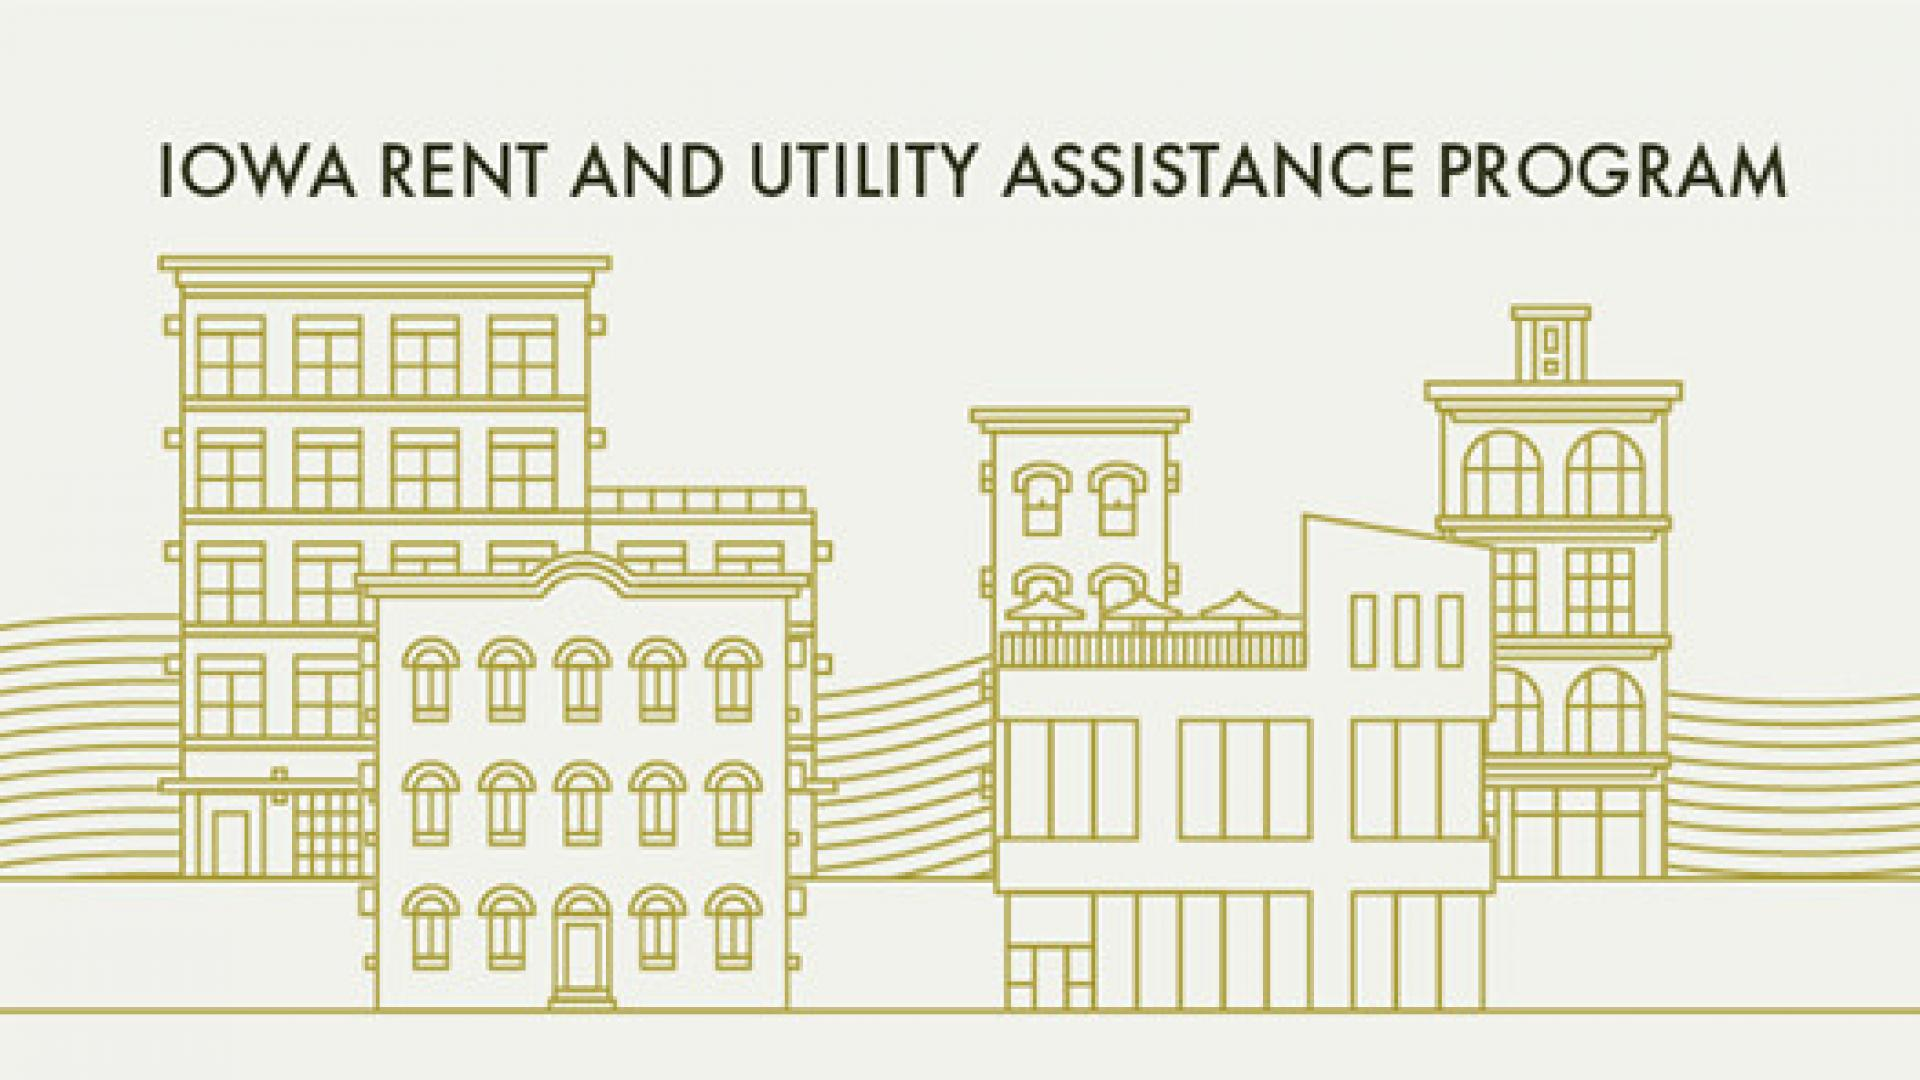 Utility Assistance Program Iowa Rent and Utility Assistance Program